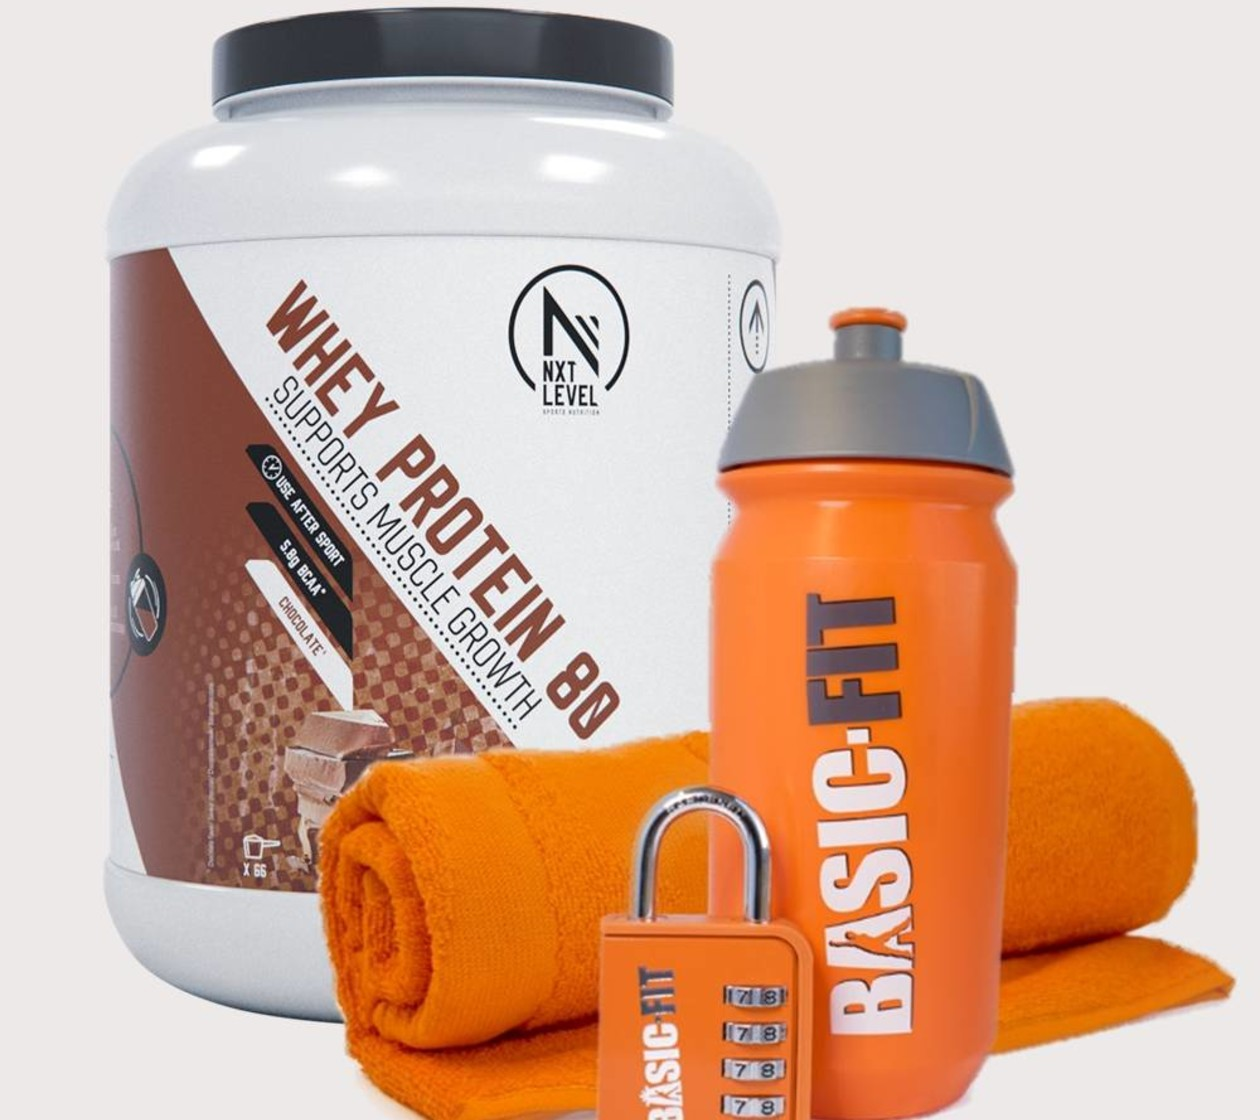 Toalla + Hangslot + Botella + NXT Level Whey Protein 80 - 2KG